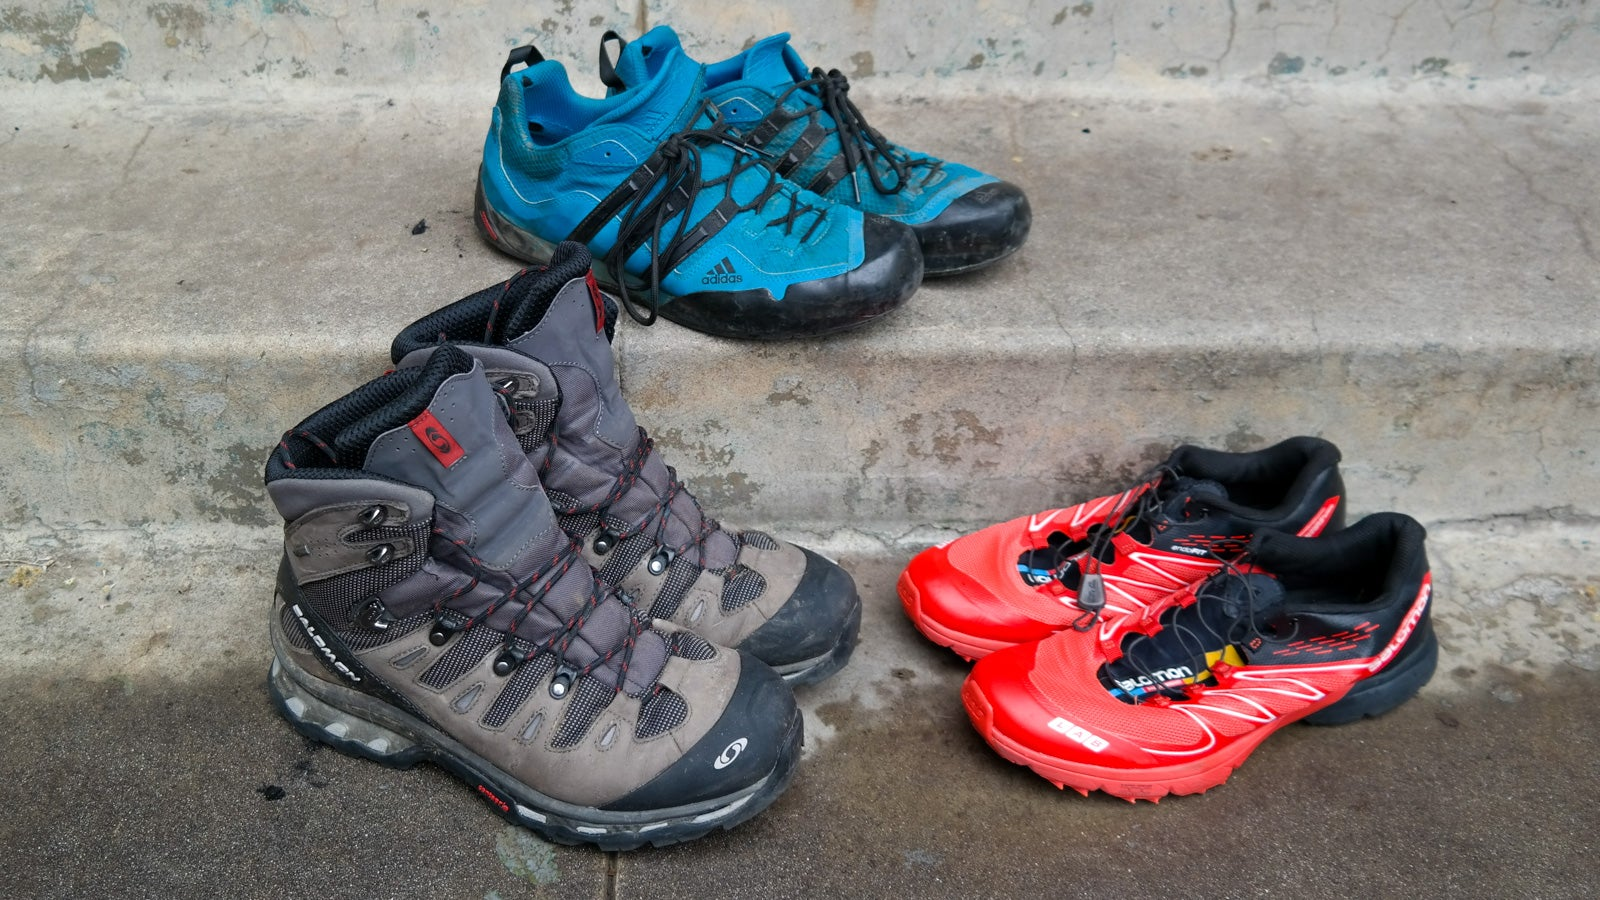 Whatu0026#39;s Better For Hiking? Boots Vs Trail Runners Vs ...